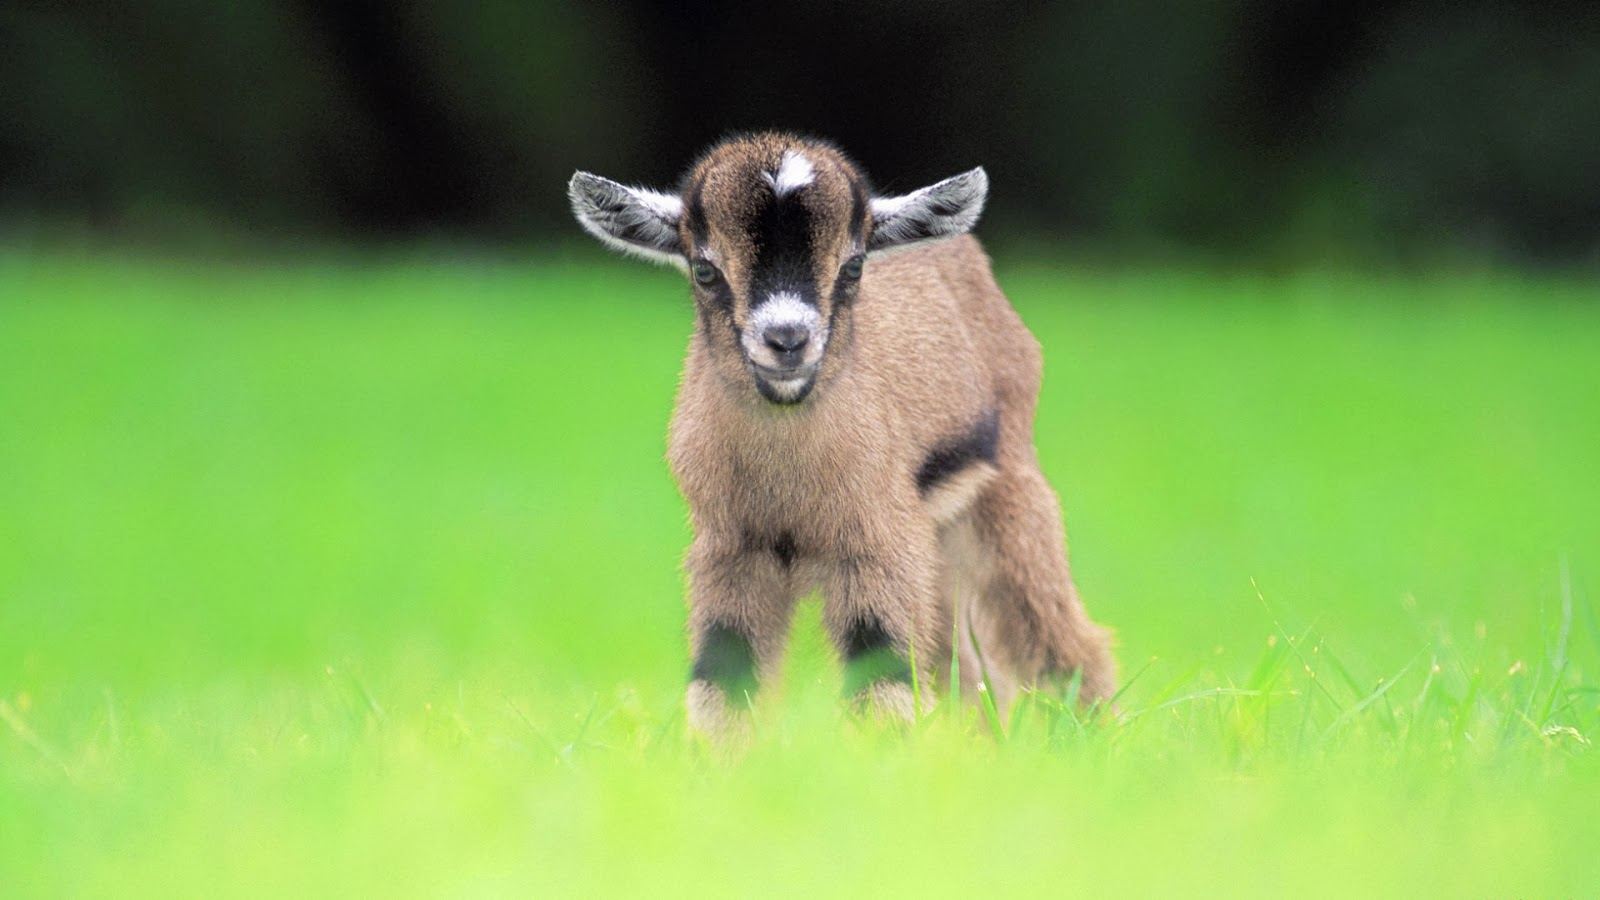 Beautiful Animal Goat Wallpapers HD ~ Desktop Wallpapers ...